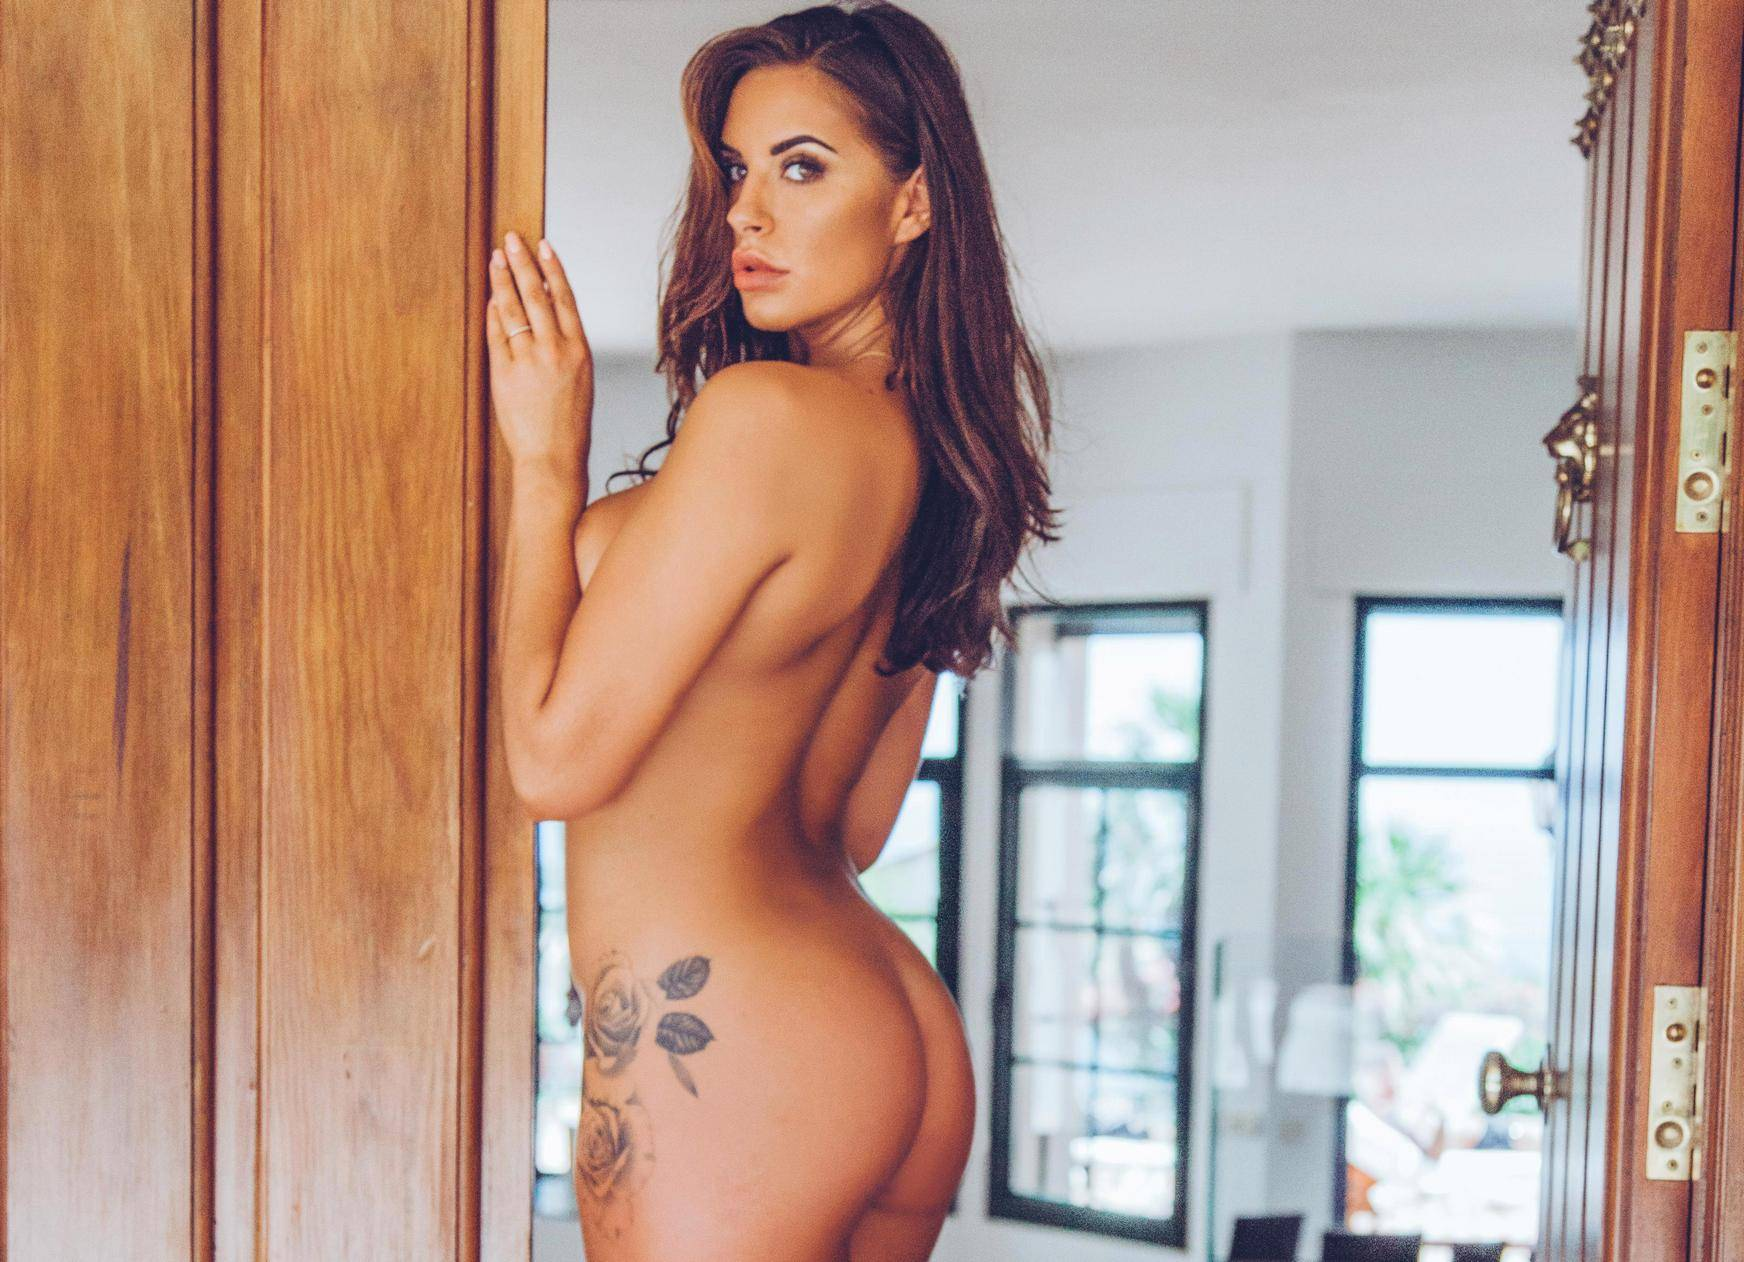 Love island's jess shears strips completely naked for steamy photo shoot